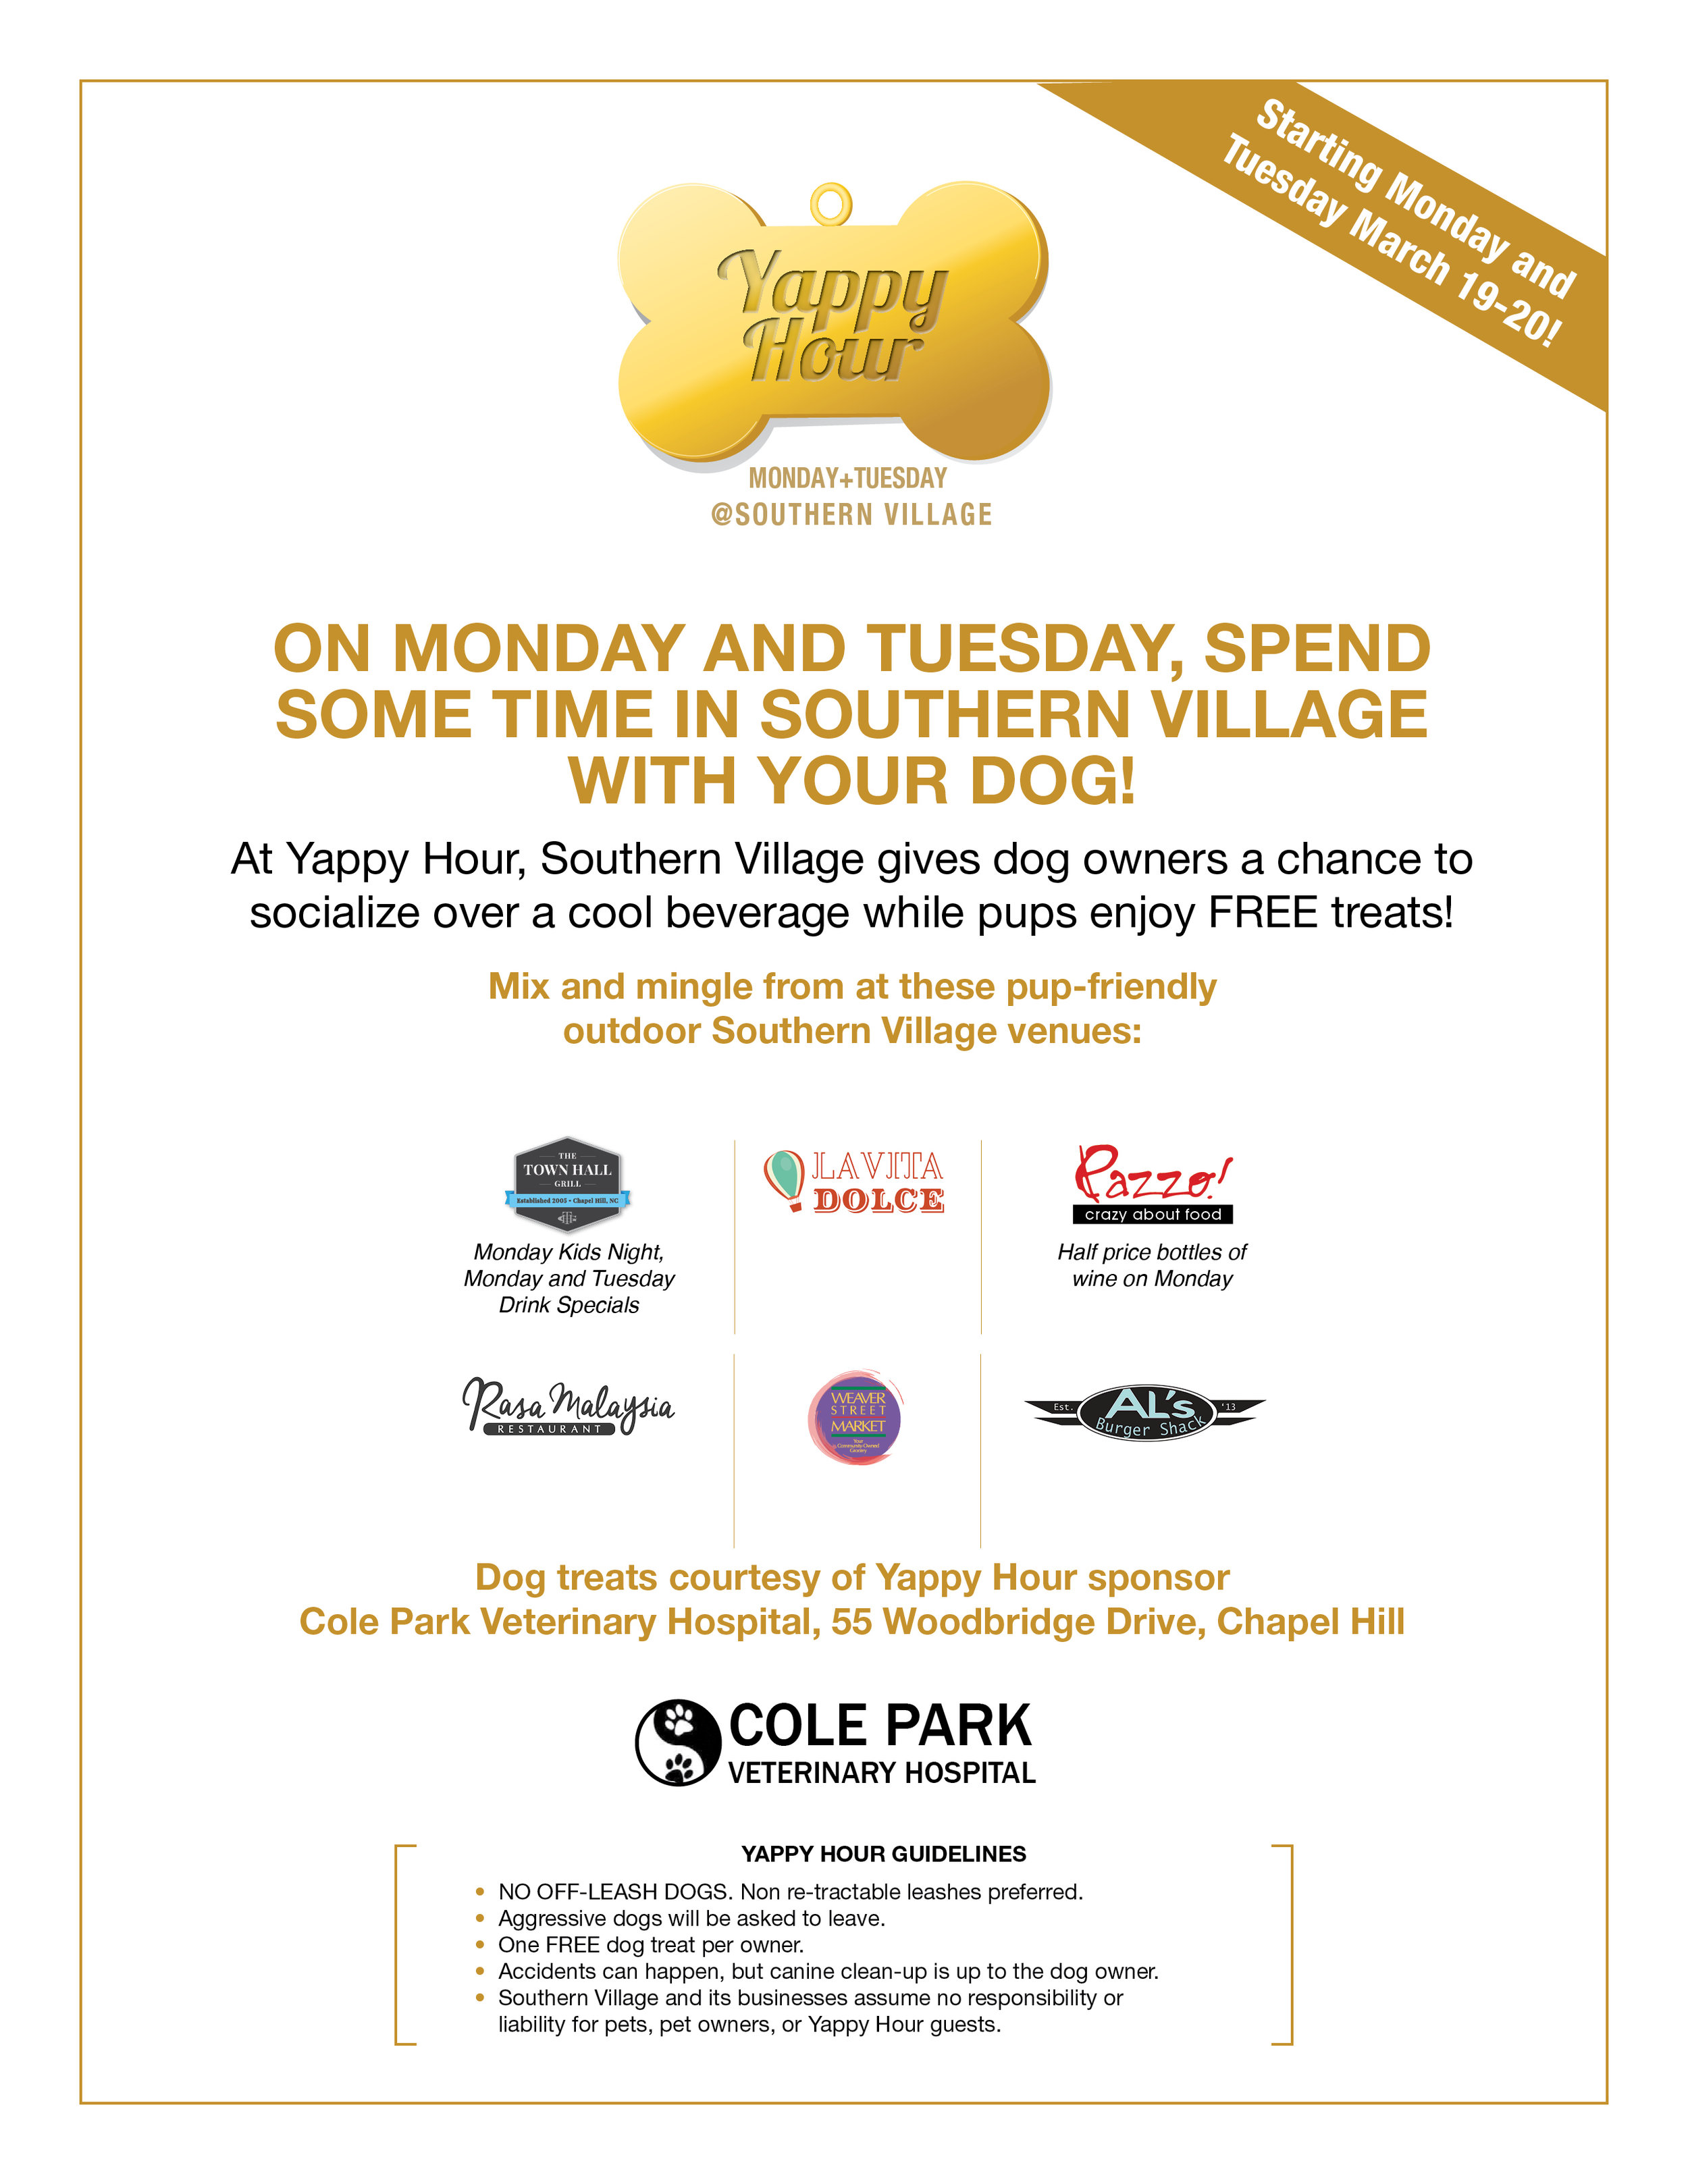 SV yappy hour flyer 22.jpg